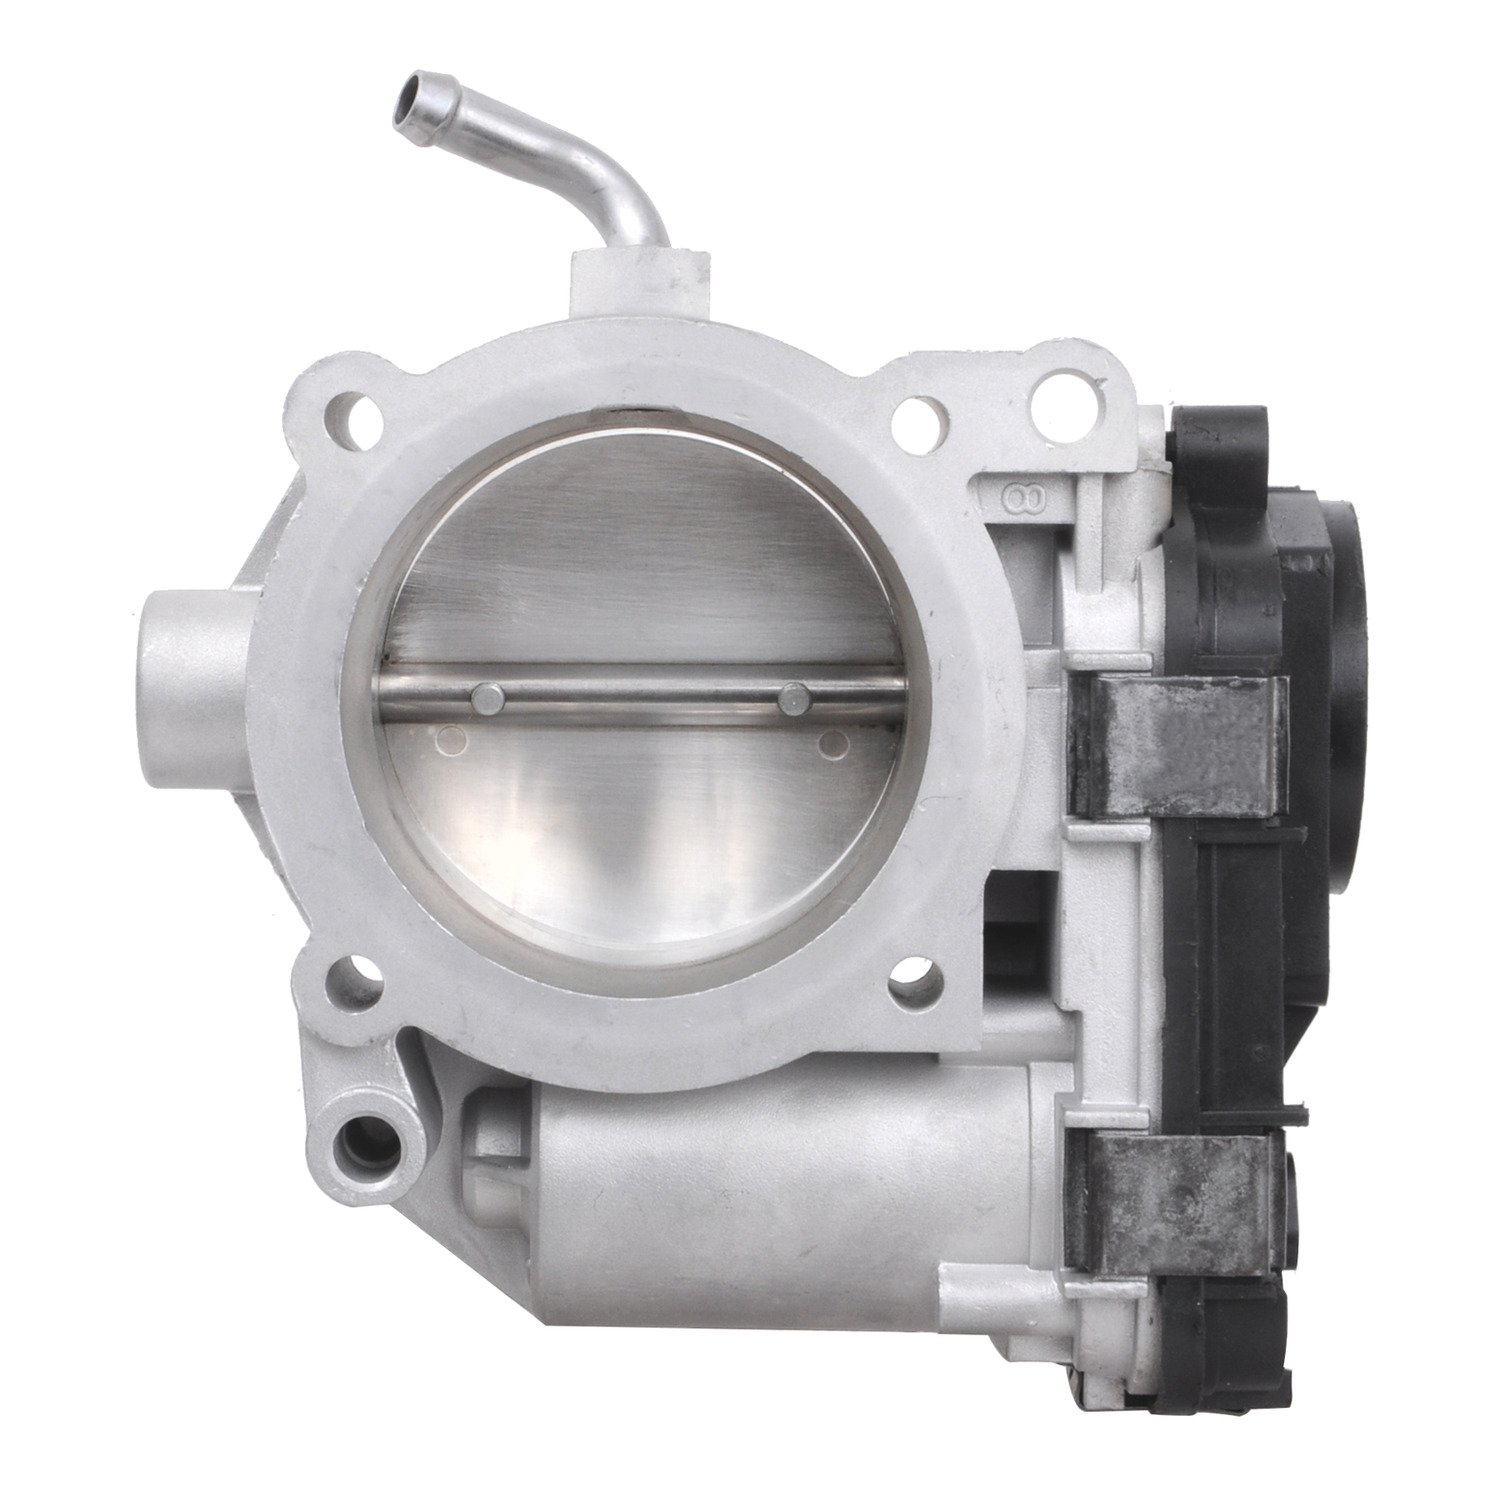 A1 Cardone 67-4007 Remanufactured Throttle Body